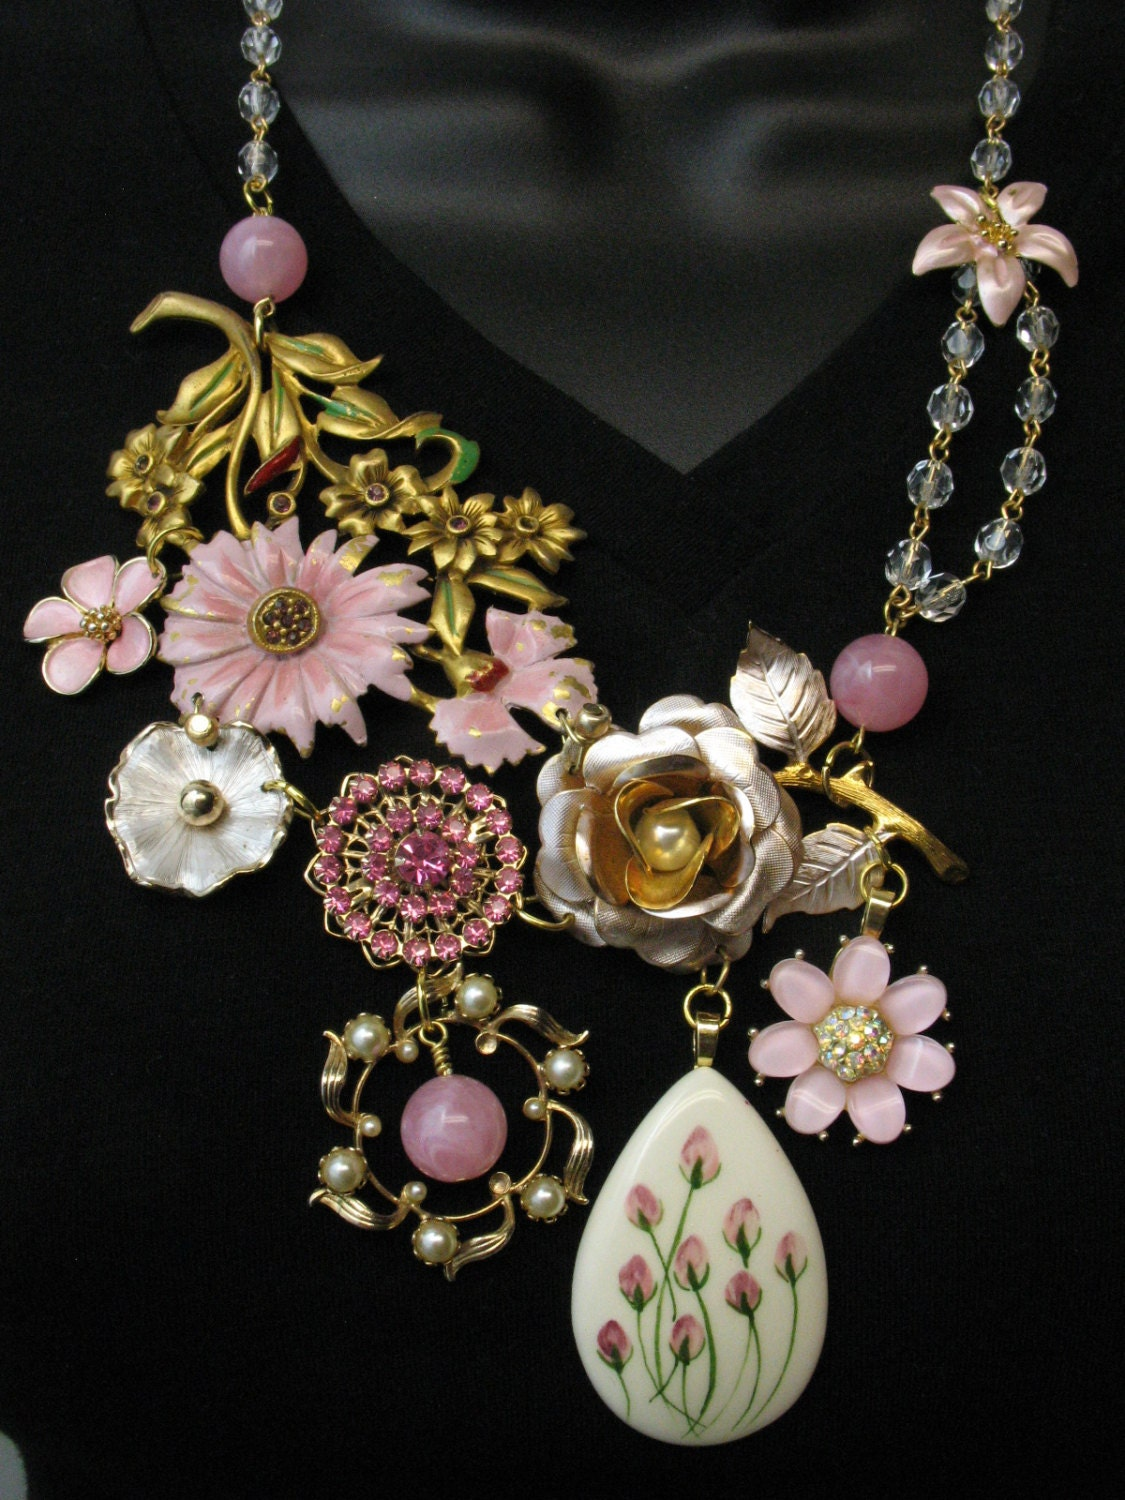 OOAK Repurposed Vintage Jewelry Couture Statement Necklace